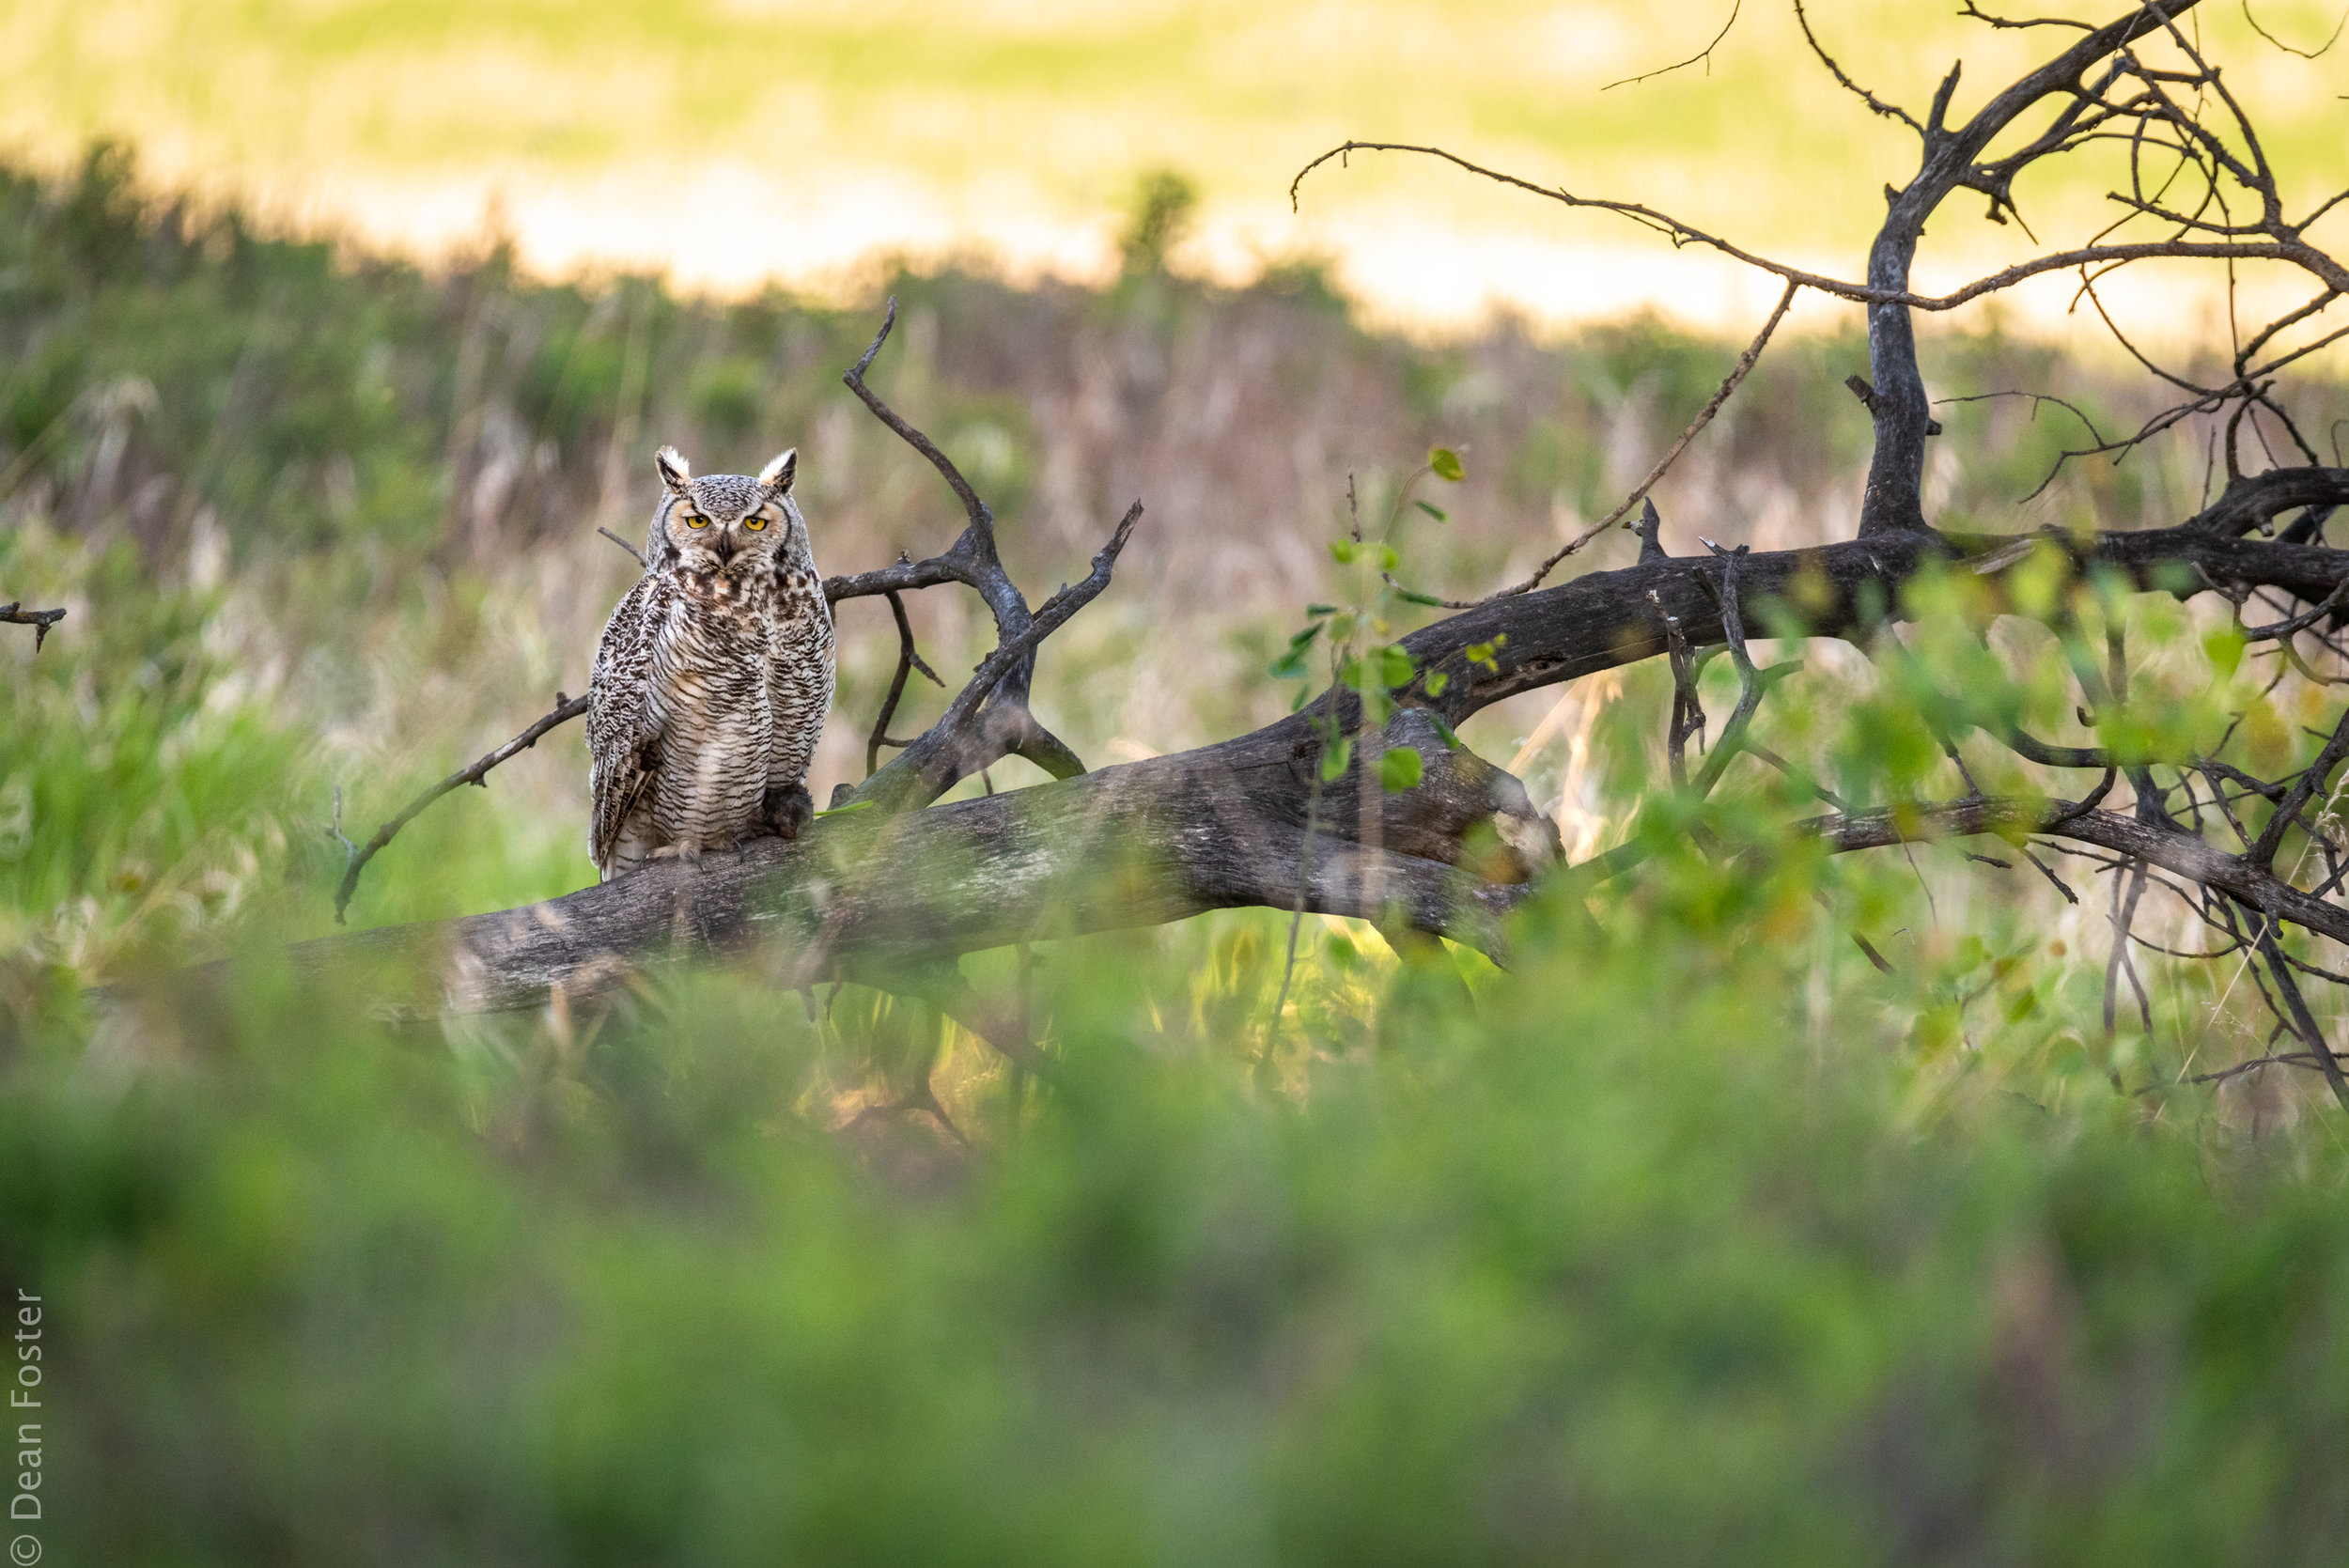 A great horned owl with a small vole returns to its young after a successful hunting trip